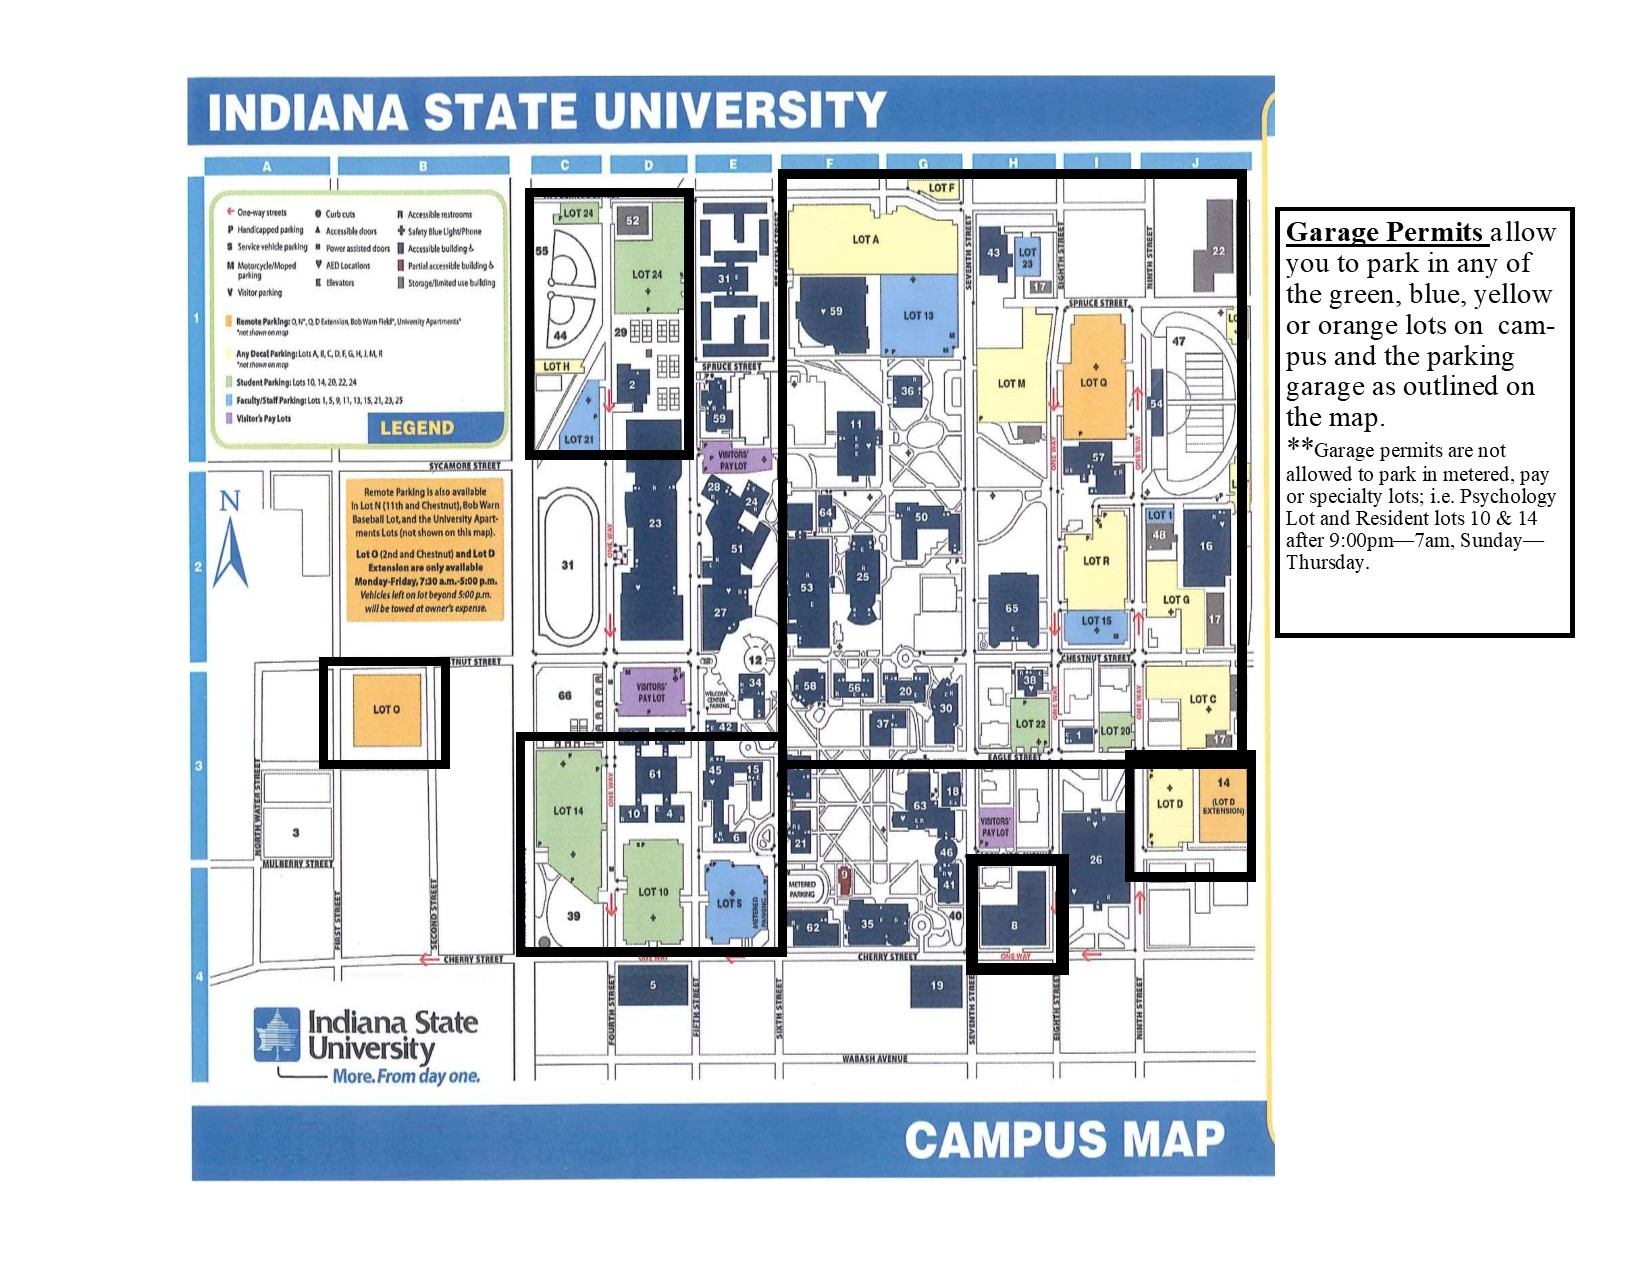 Parking | Indiana State University on k-state campus map printable, kansas university interactive map, indiana university union street map, kstate campus map, johnson county community college campus map, wsu map, k-state city map, oklahoma state campus map, kansas state campus map, westfield state map, engineering campus map, k-state campus map street directions, k-state parking map, kentucky state university map, penn valley campus map, university of kansas map, ksu campus map, kansas city highway map, k-state campus buildings,